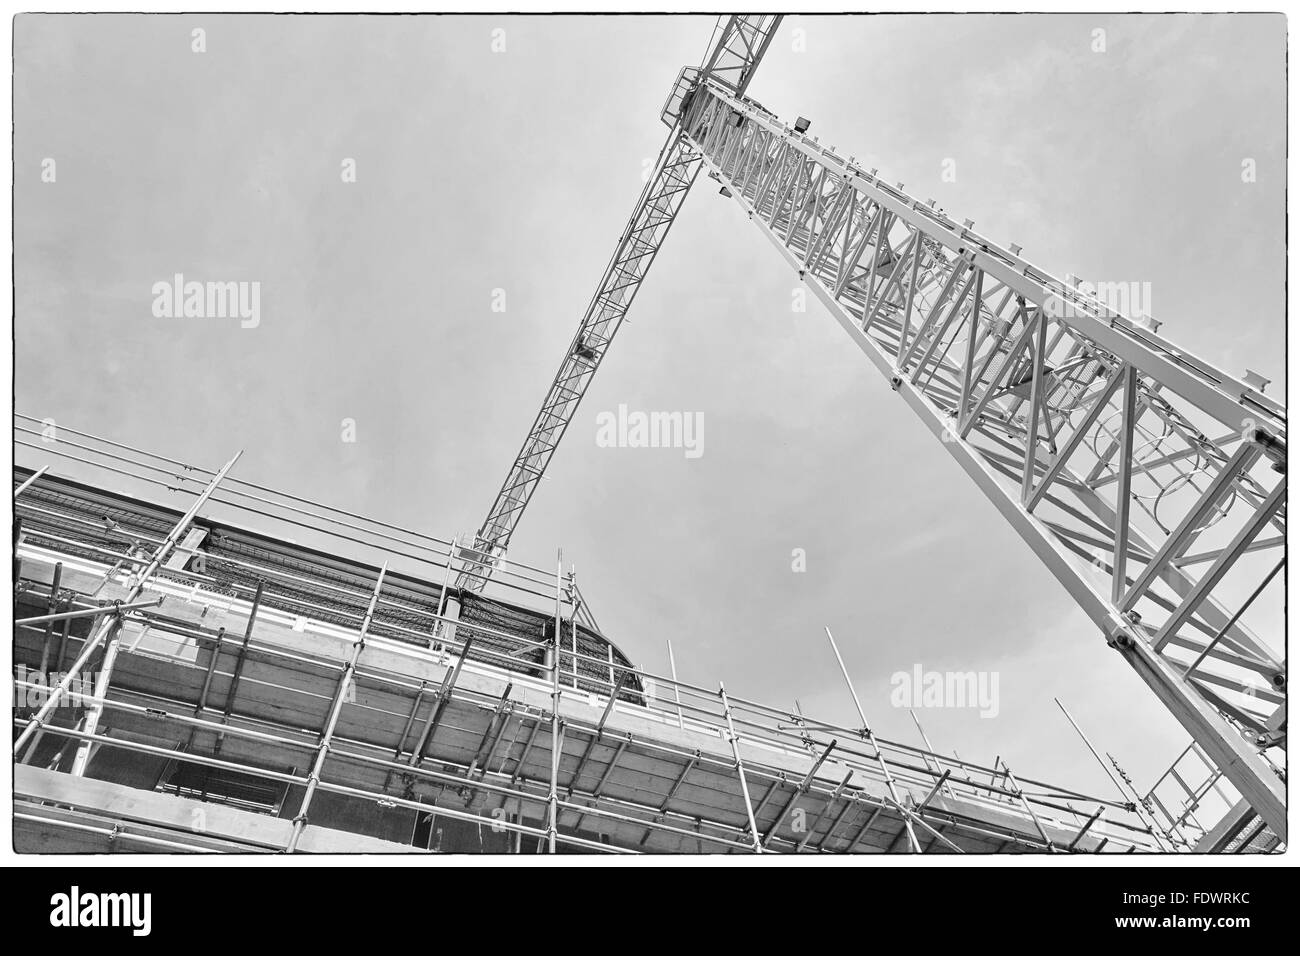 A construction site with concrete slabs built held together with scaffolding - Stock Image